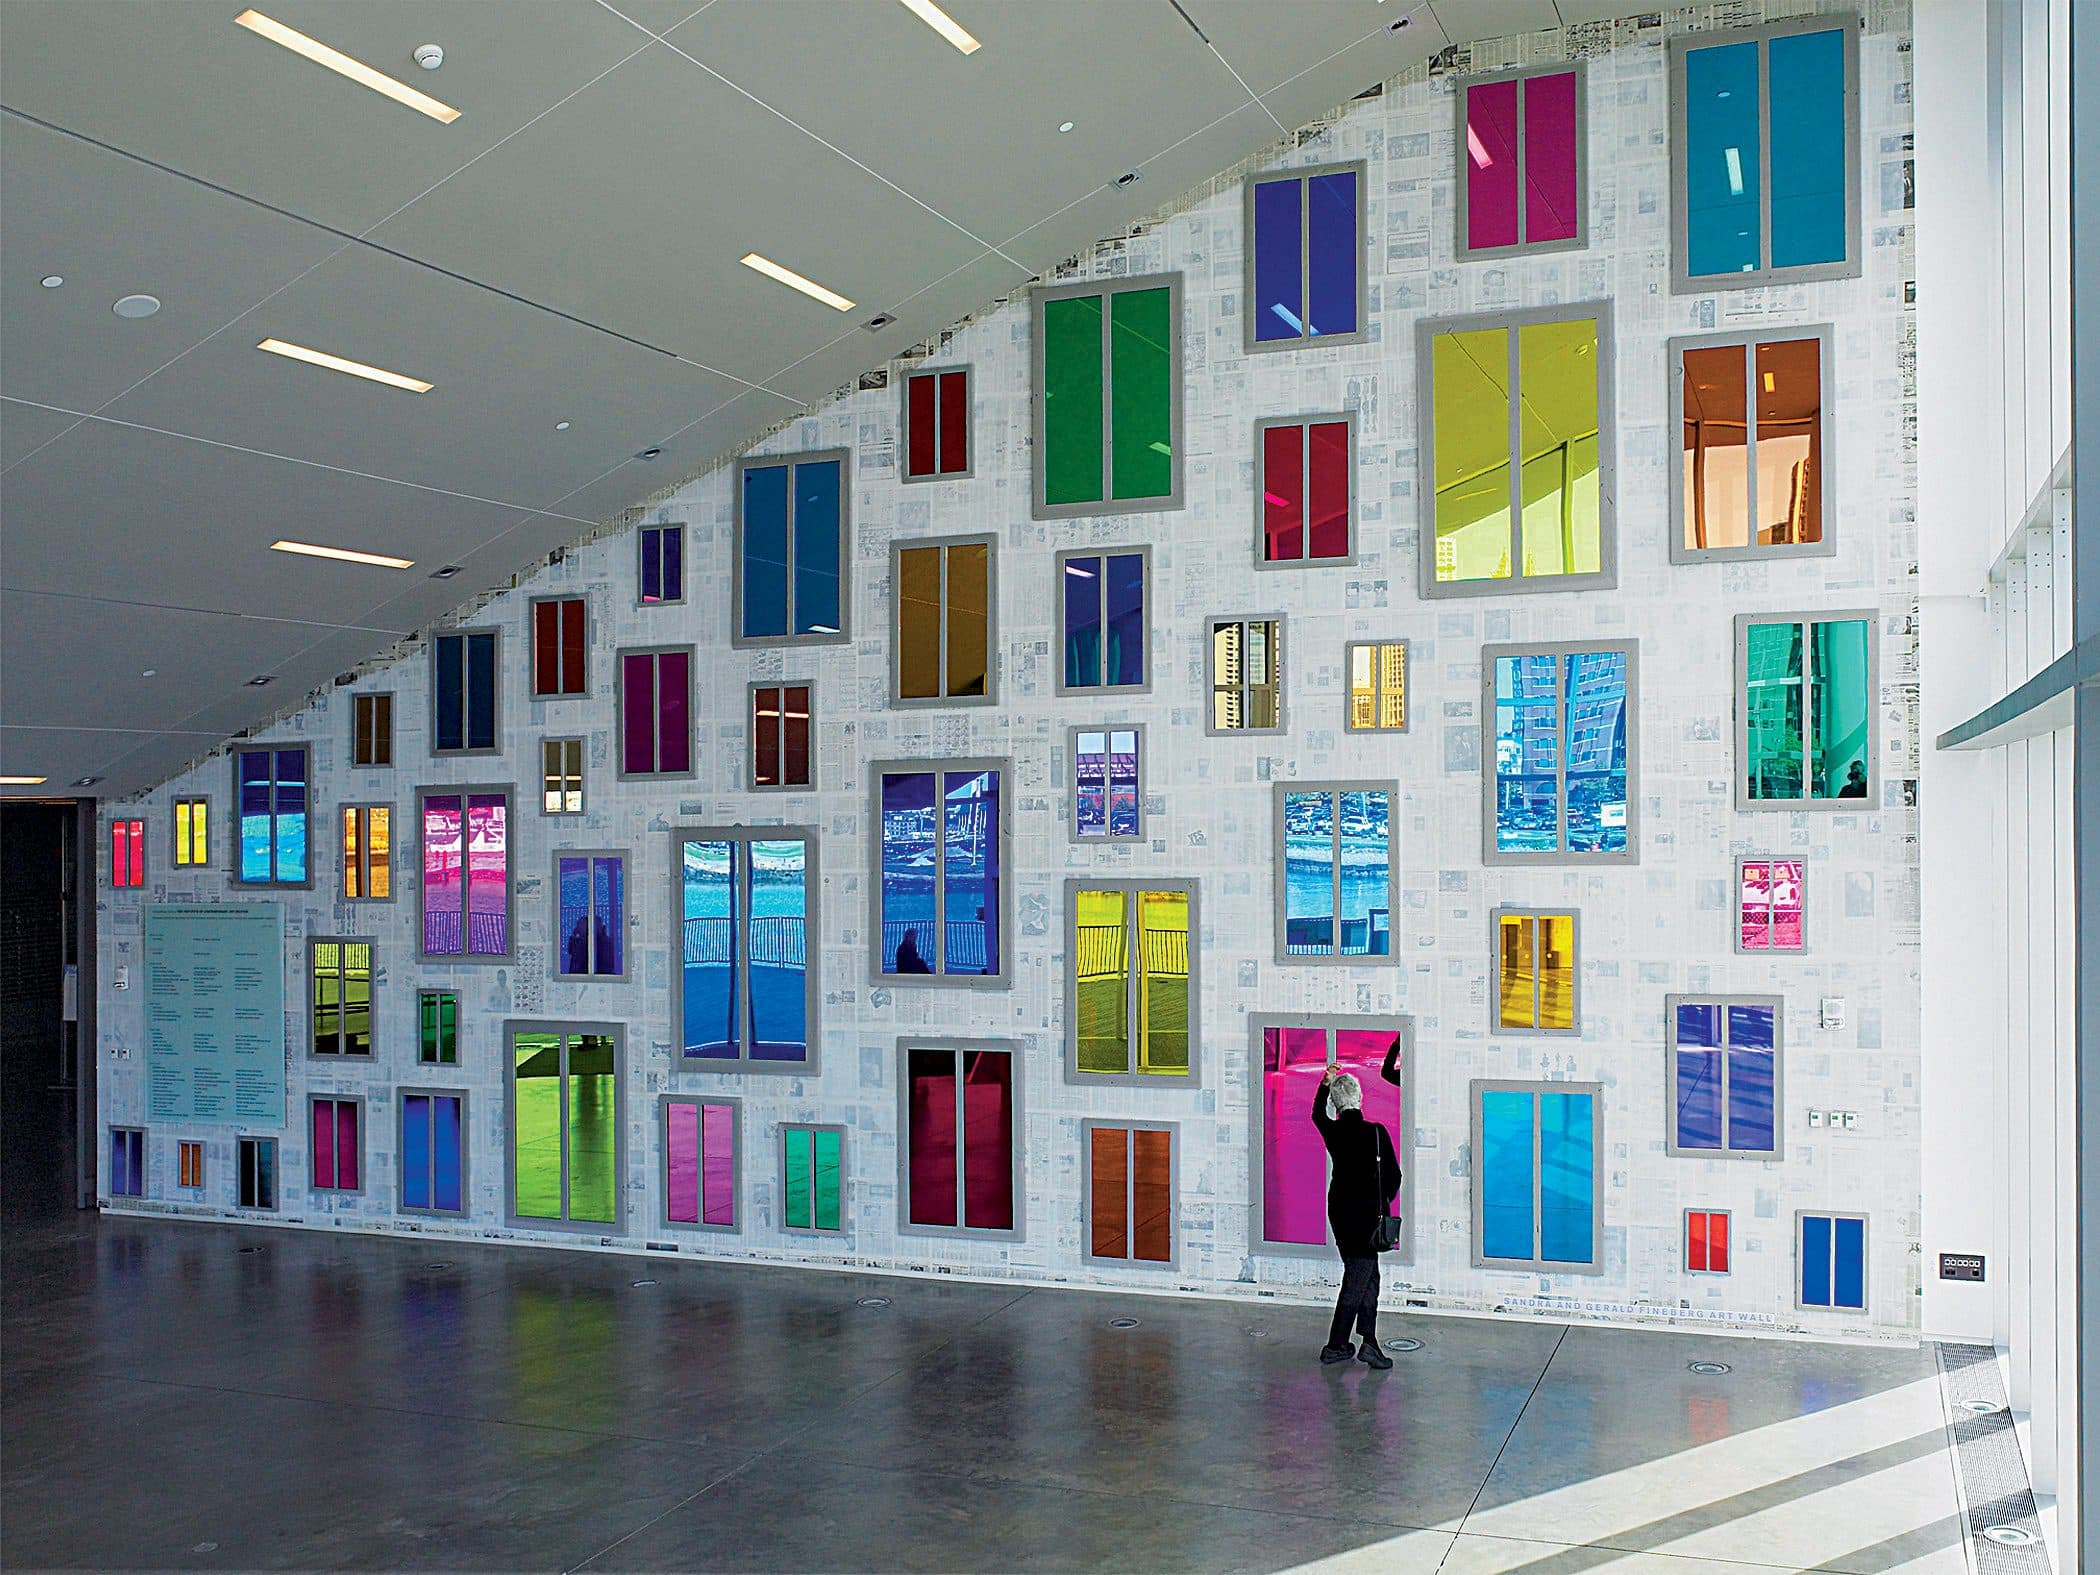 The Institute of Contemporary Art has made a huge impact